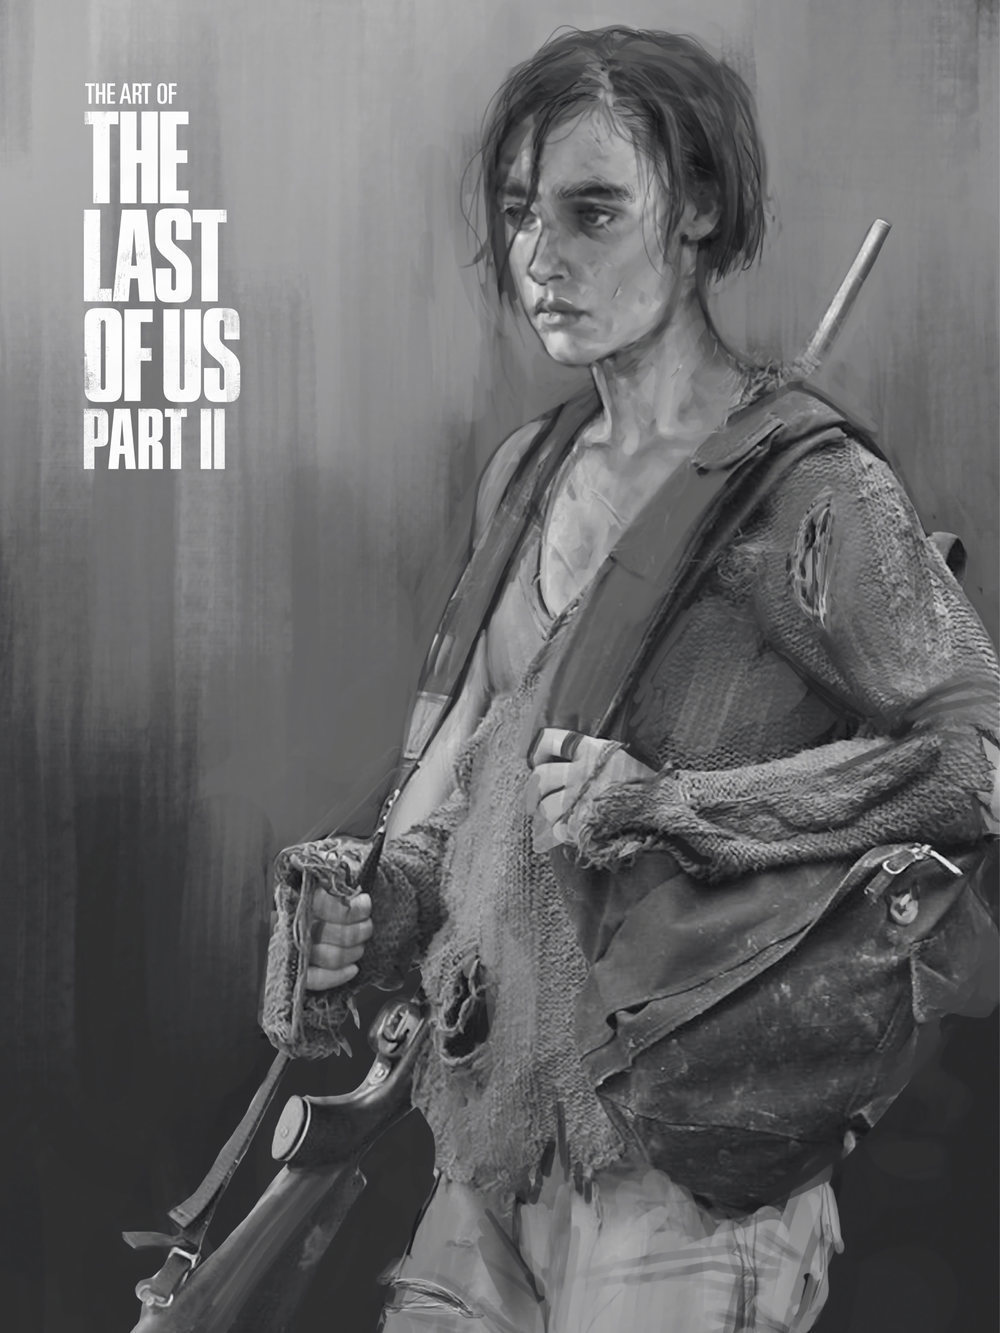 【最后的生还者2(The Last of Us Part II)】 (7).jpg